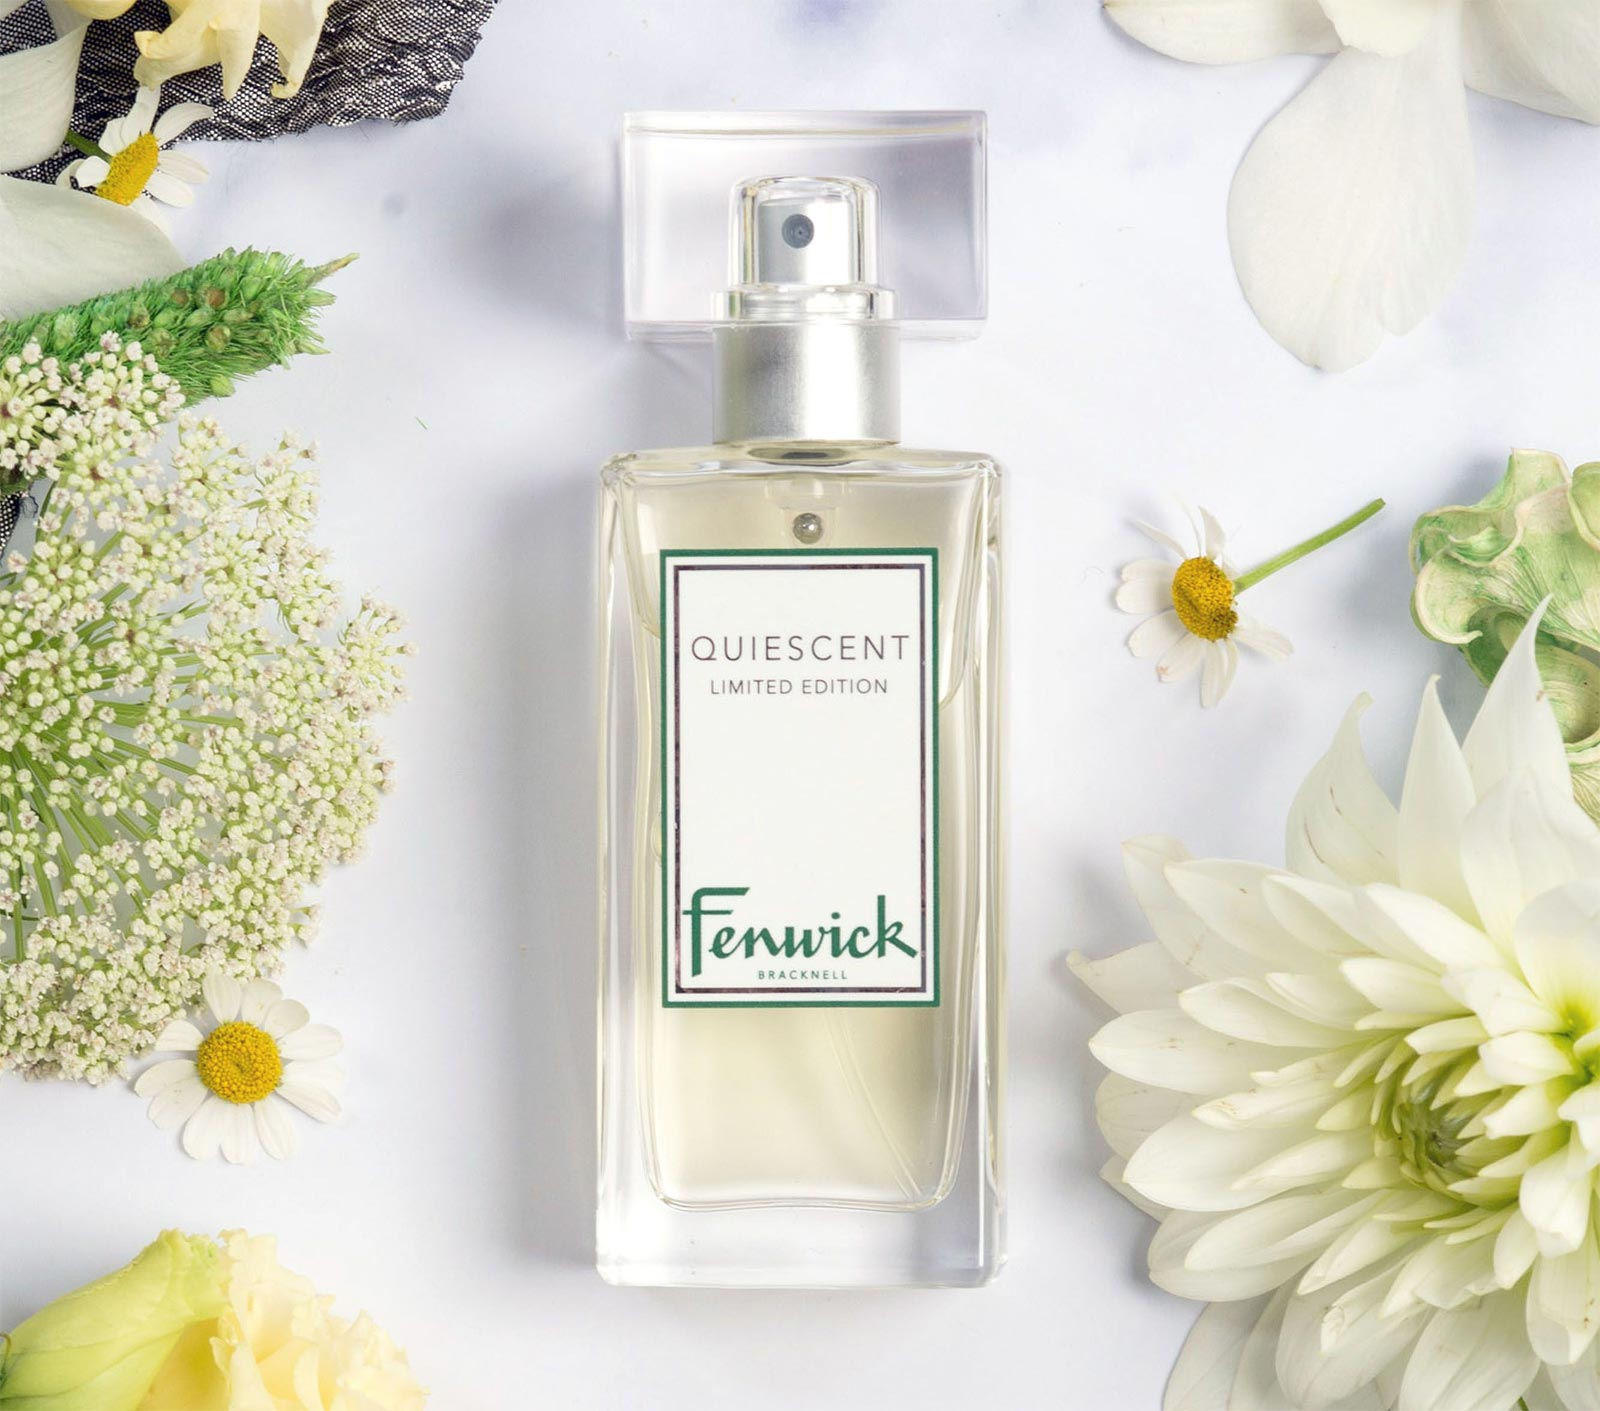 Fenwick Launches Quiescent Fragrance in Conjunction with New Bracknell Store 12